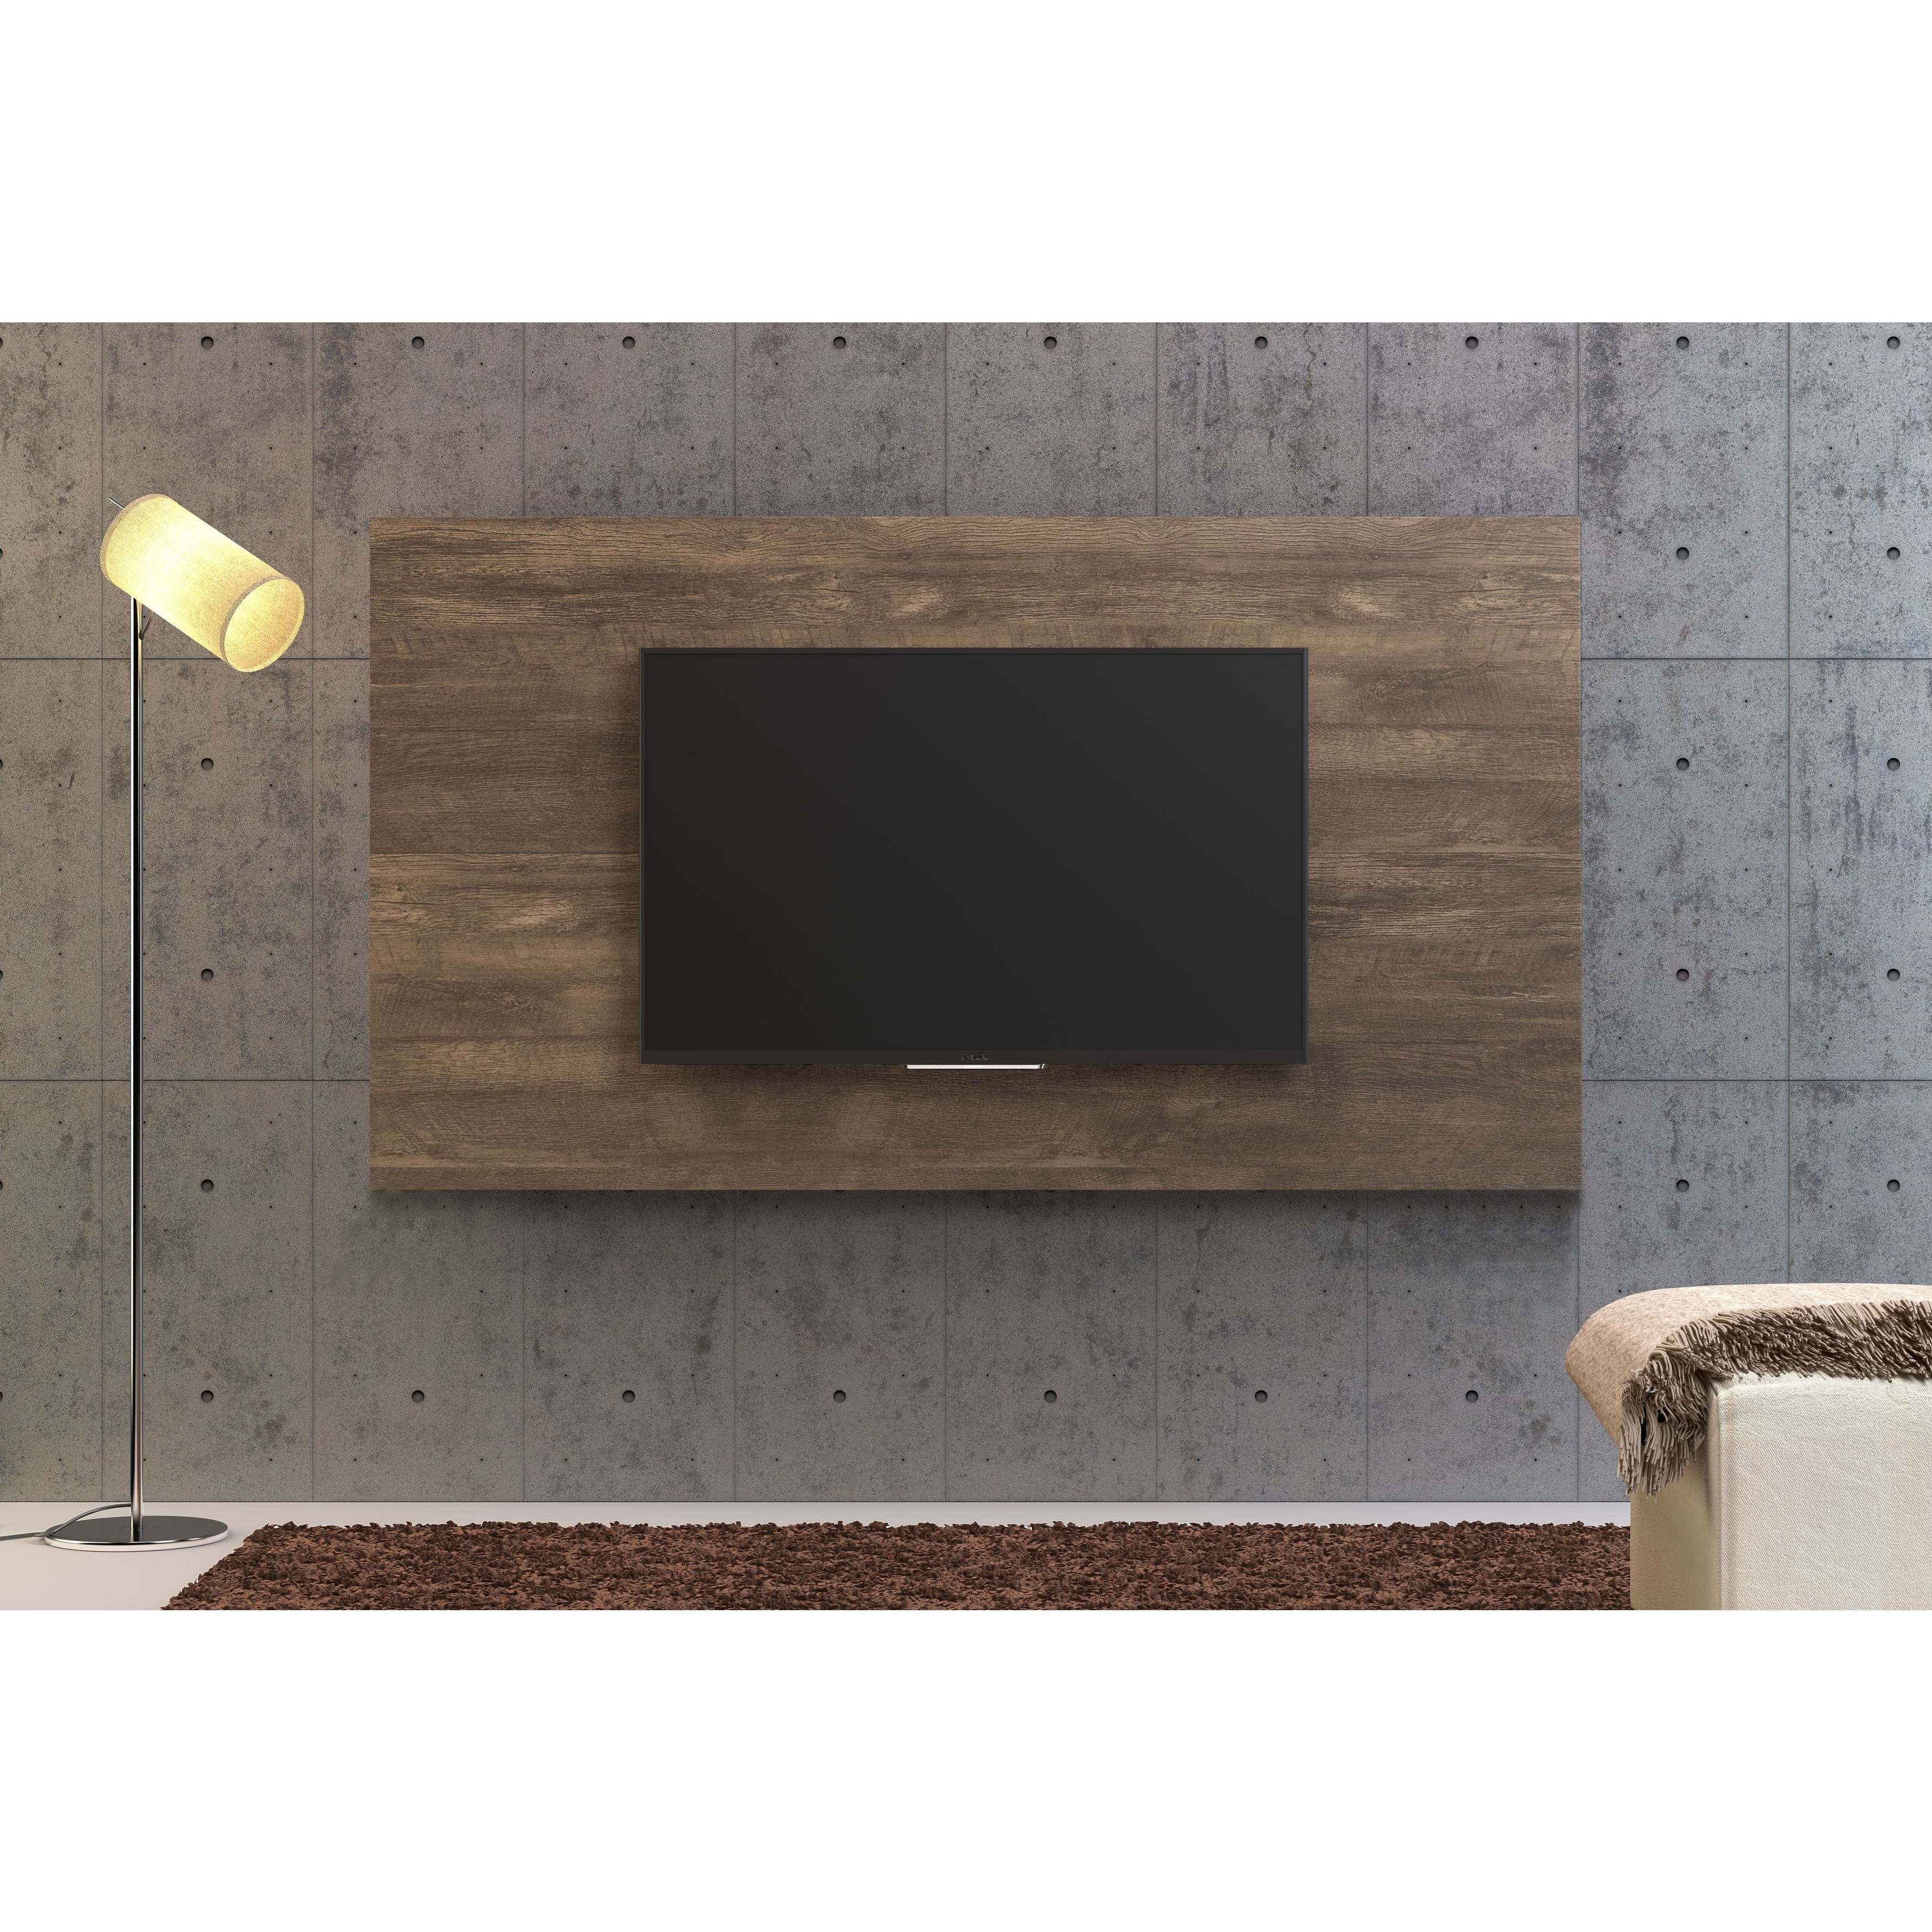 Shop Midtown Concept Barcelona Distressed Grey 70 Inch Mid Century Intended For Valencia 70 Inch Tv Stands (View 15 of 20)